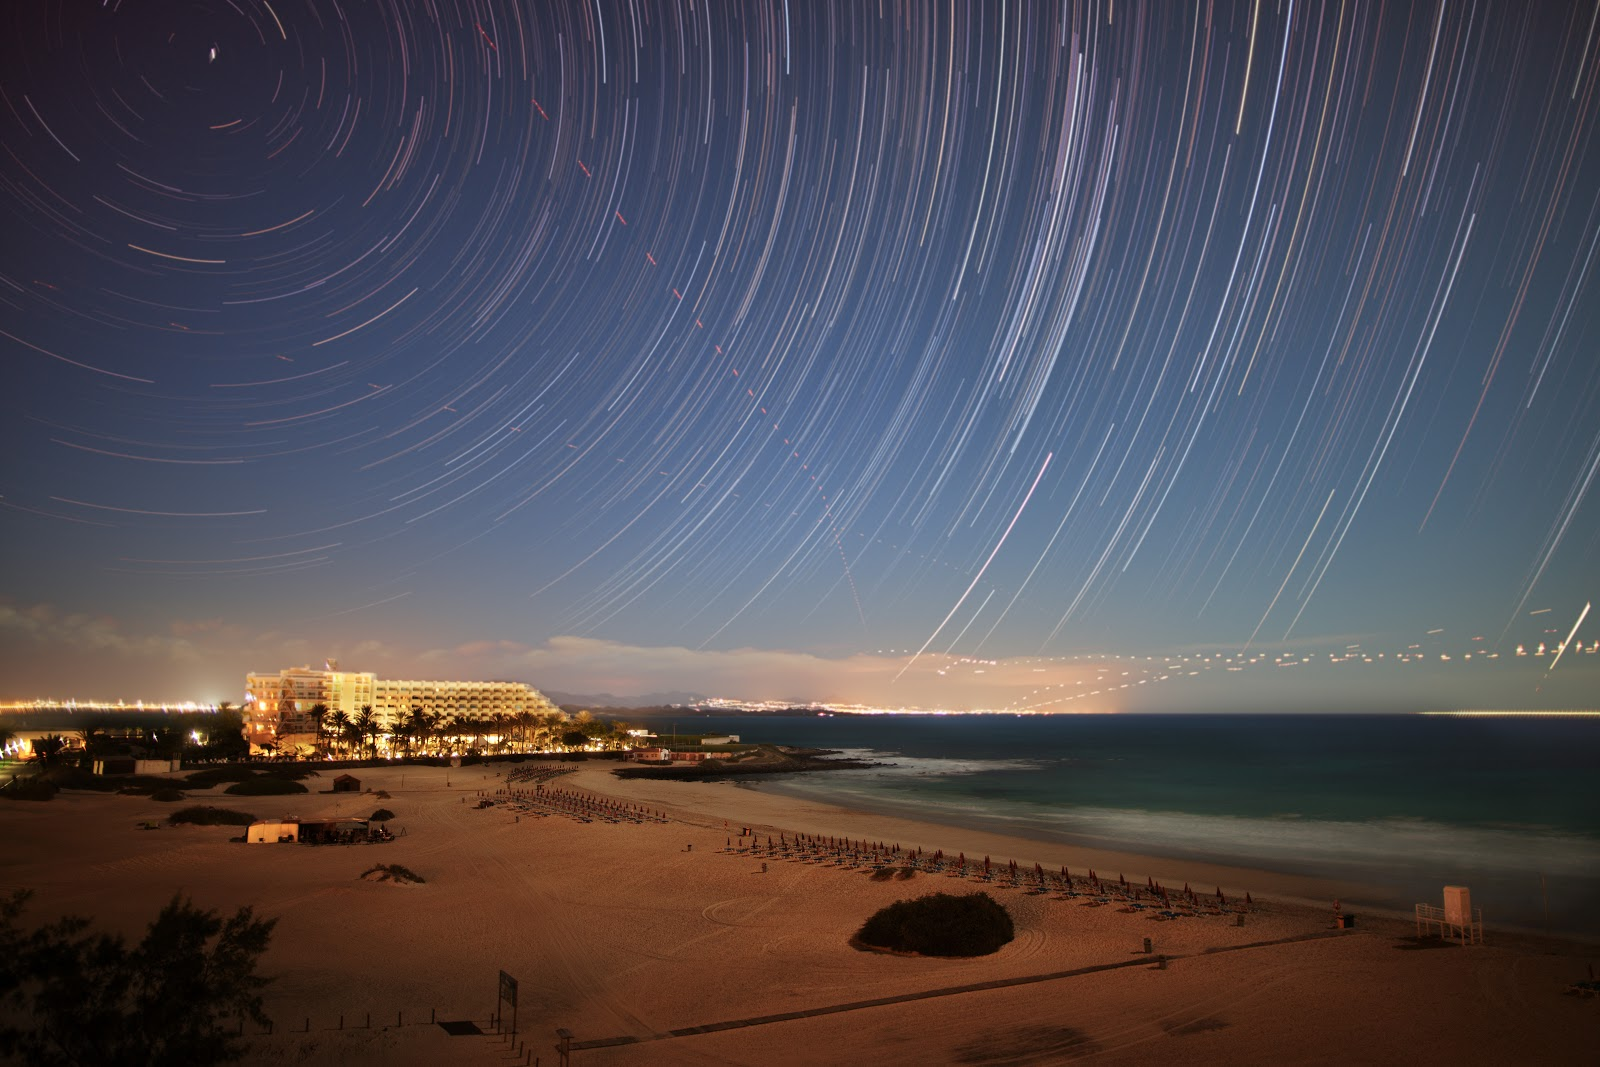 Star trails photo